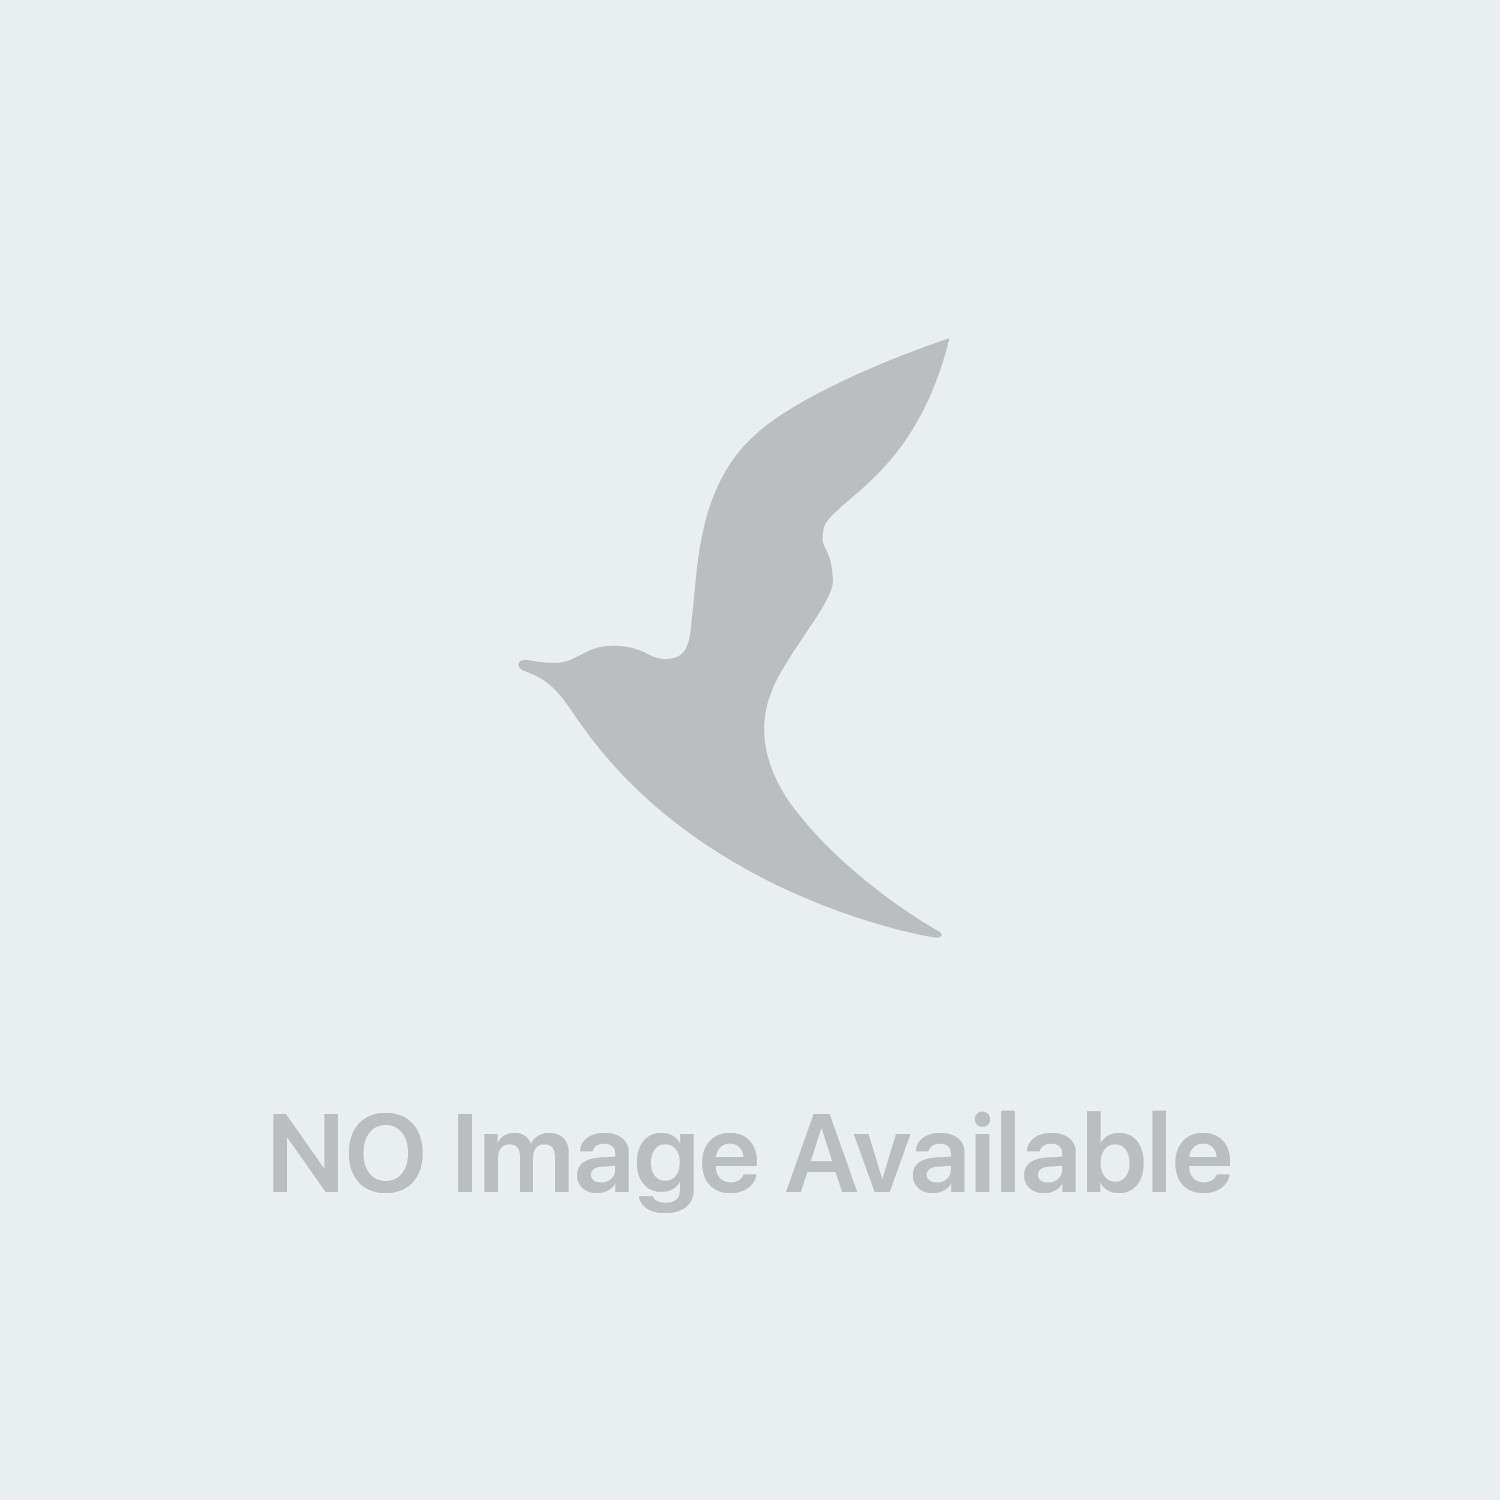 Ecocel Plus Idrolacca Ungueale 3,3 Ml